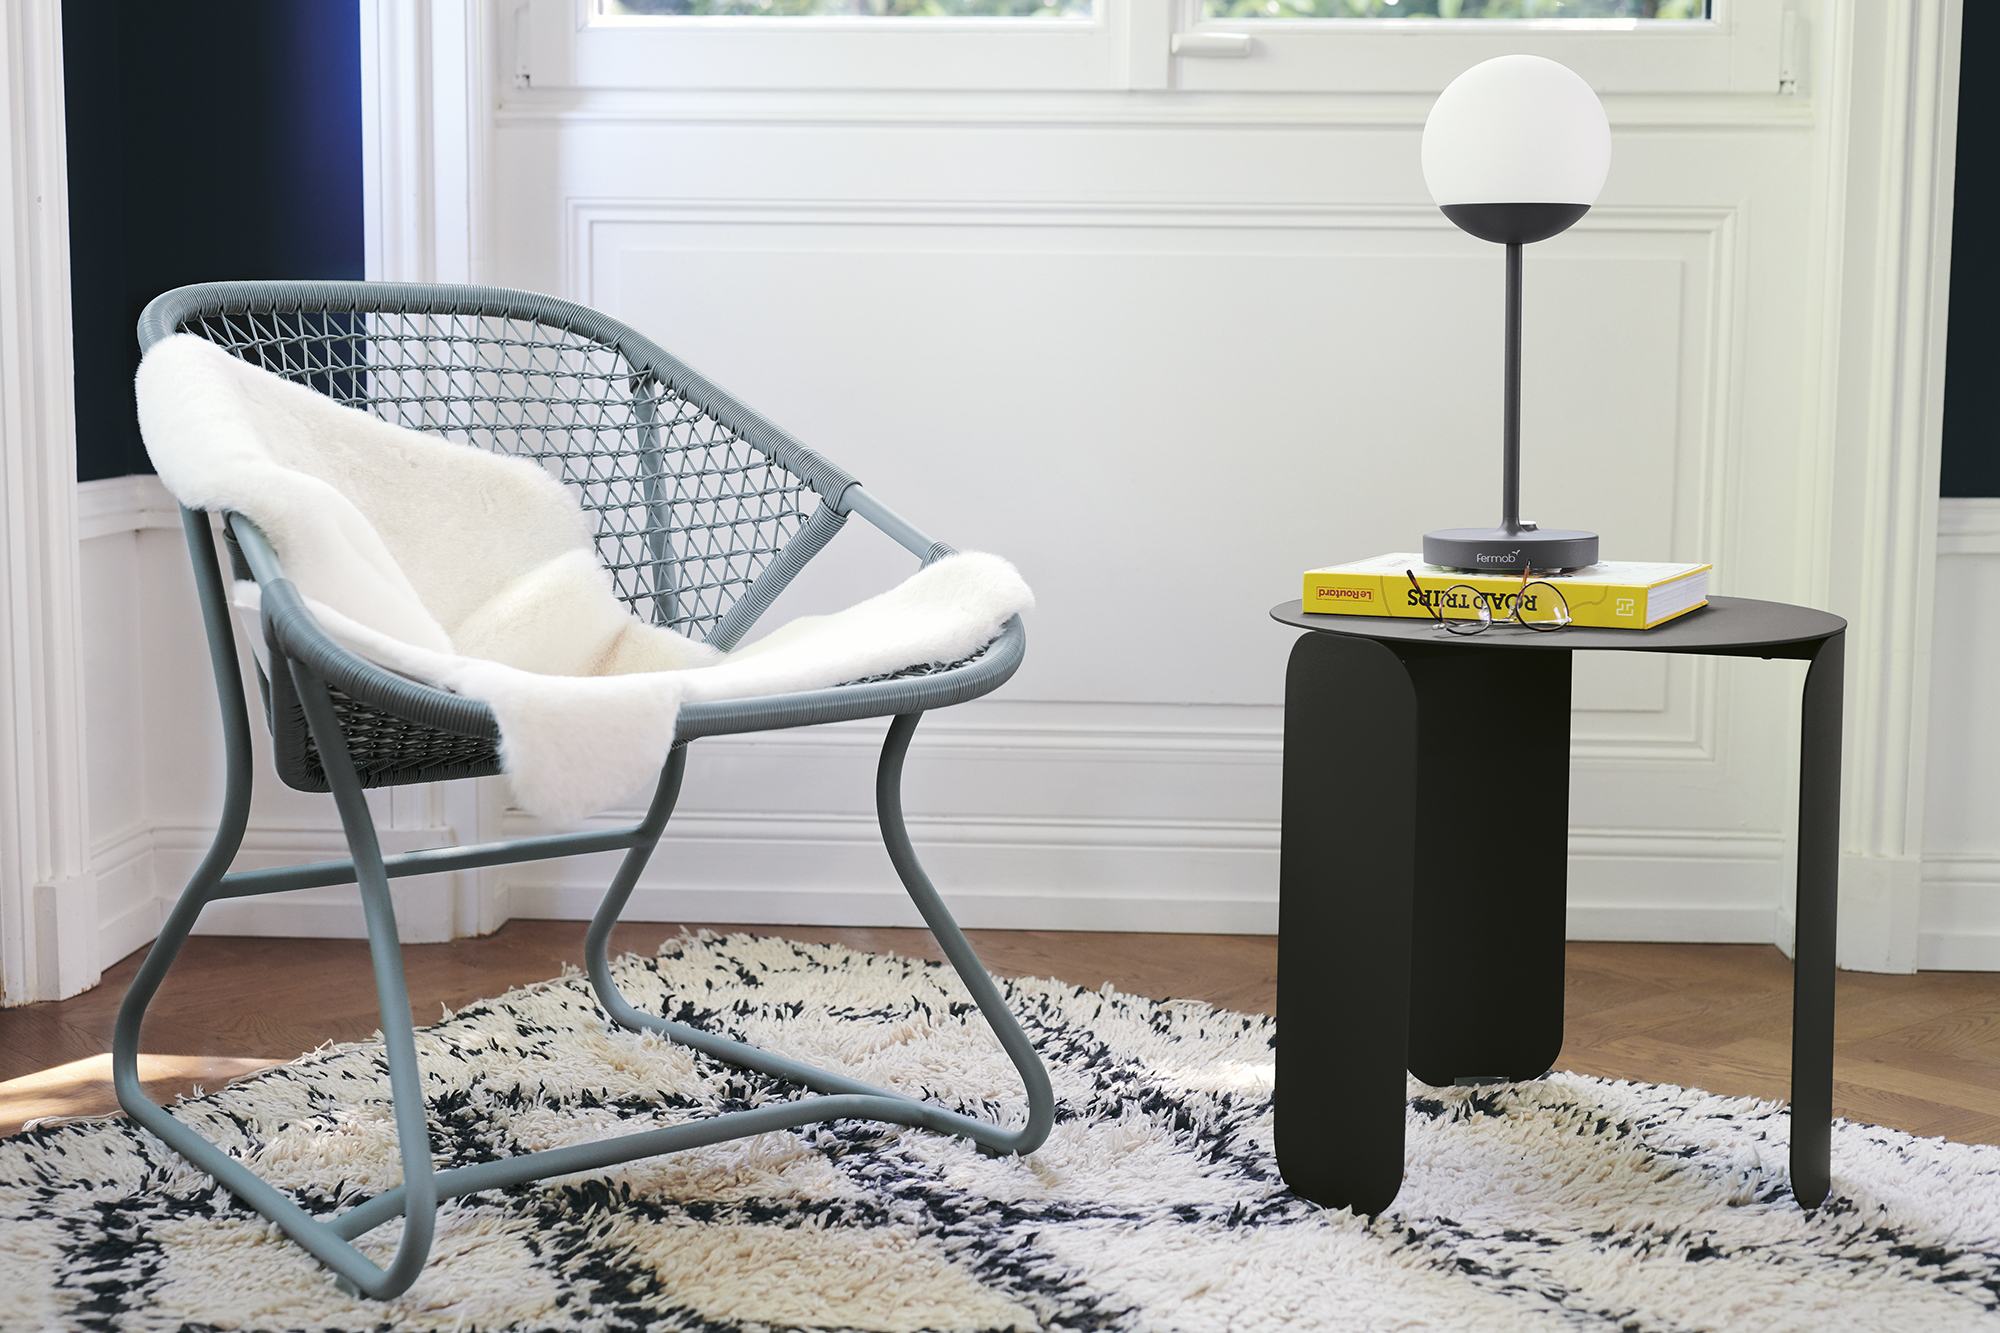 salon Fermob, fauteuil de jardin, table basse metal, fauteuil design, table basse design, lampe fermob, lampe sans fil, lampe moon